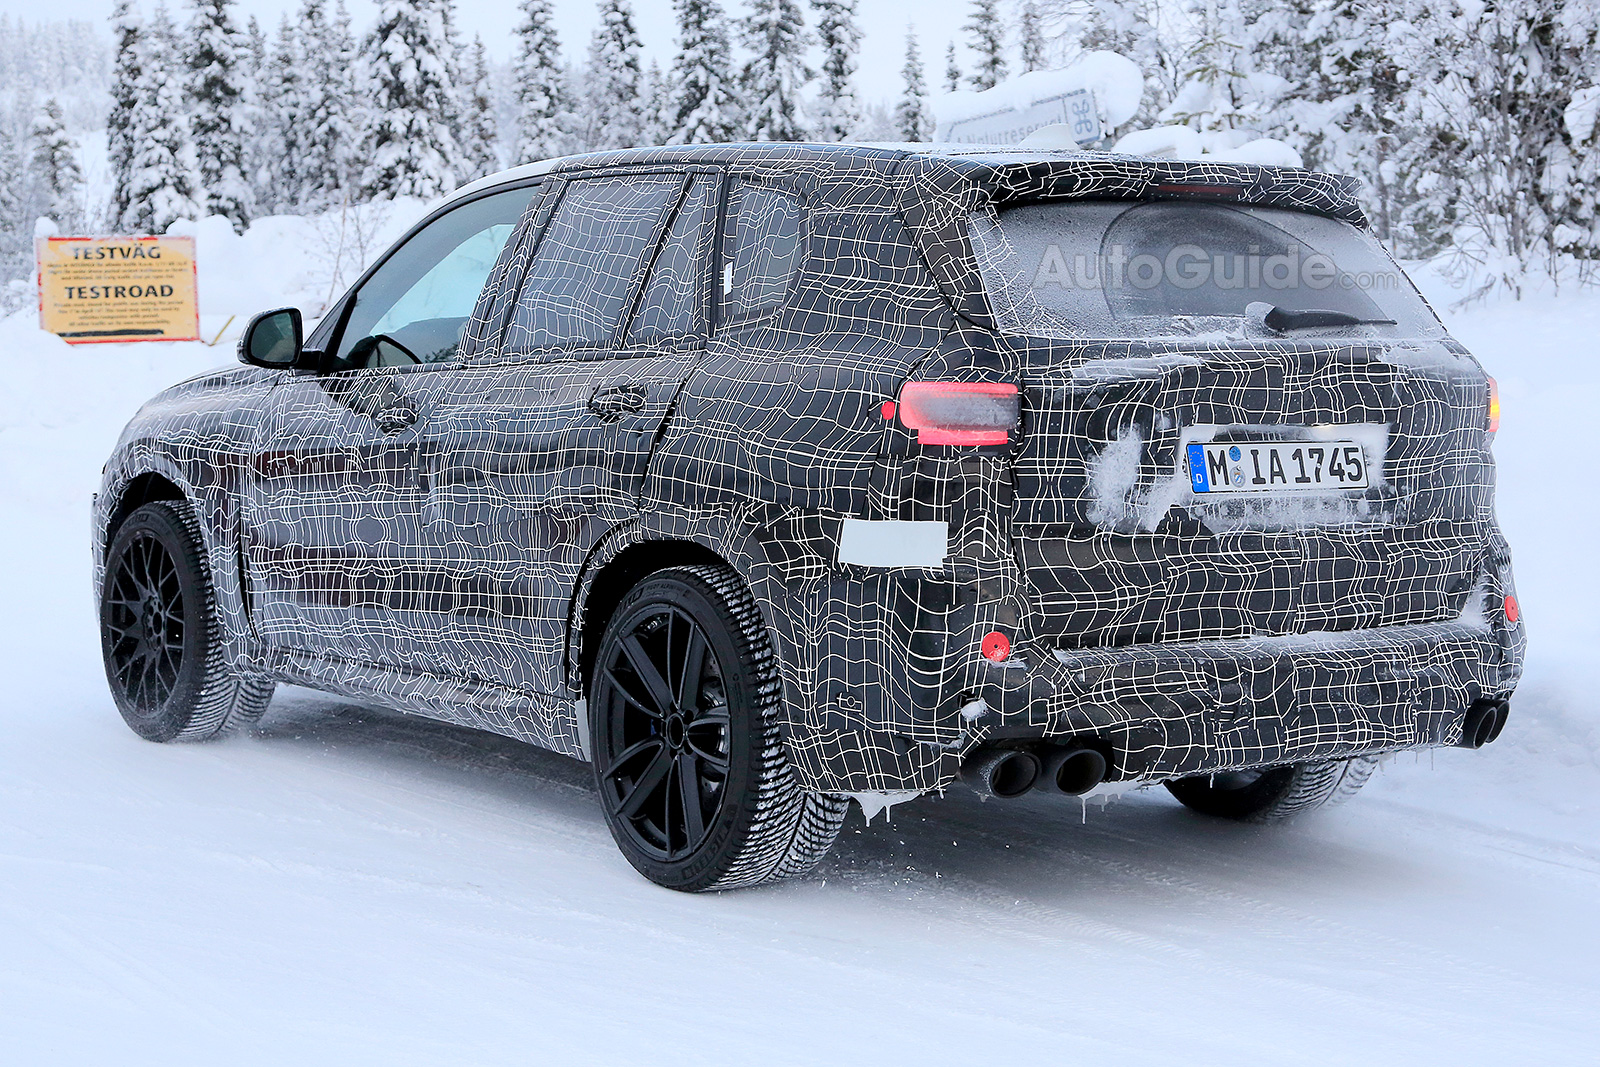 2019 bmw x5 m reveals more of its aggressive styling » autoguide